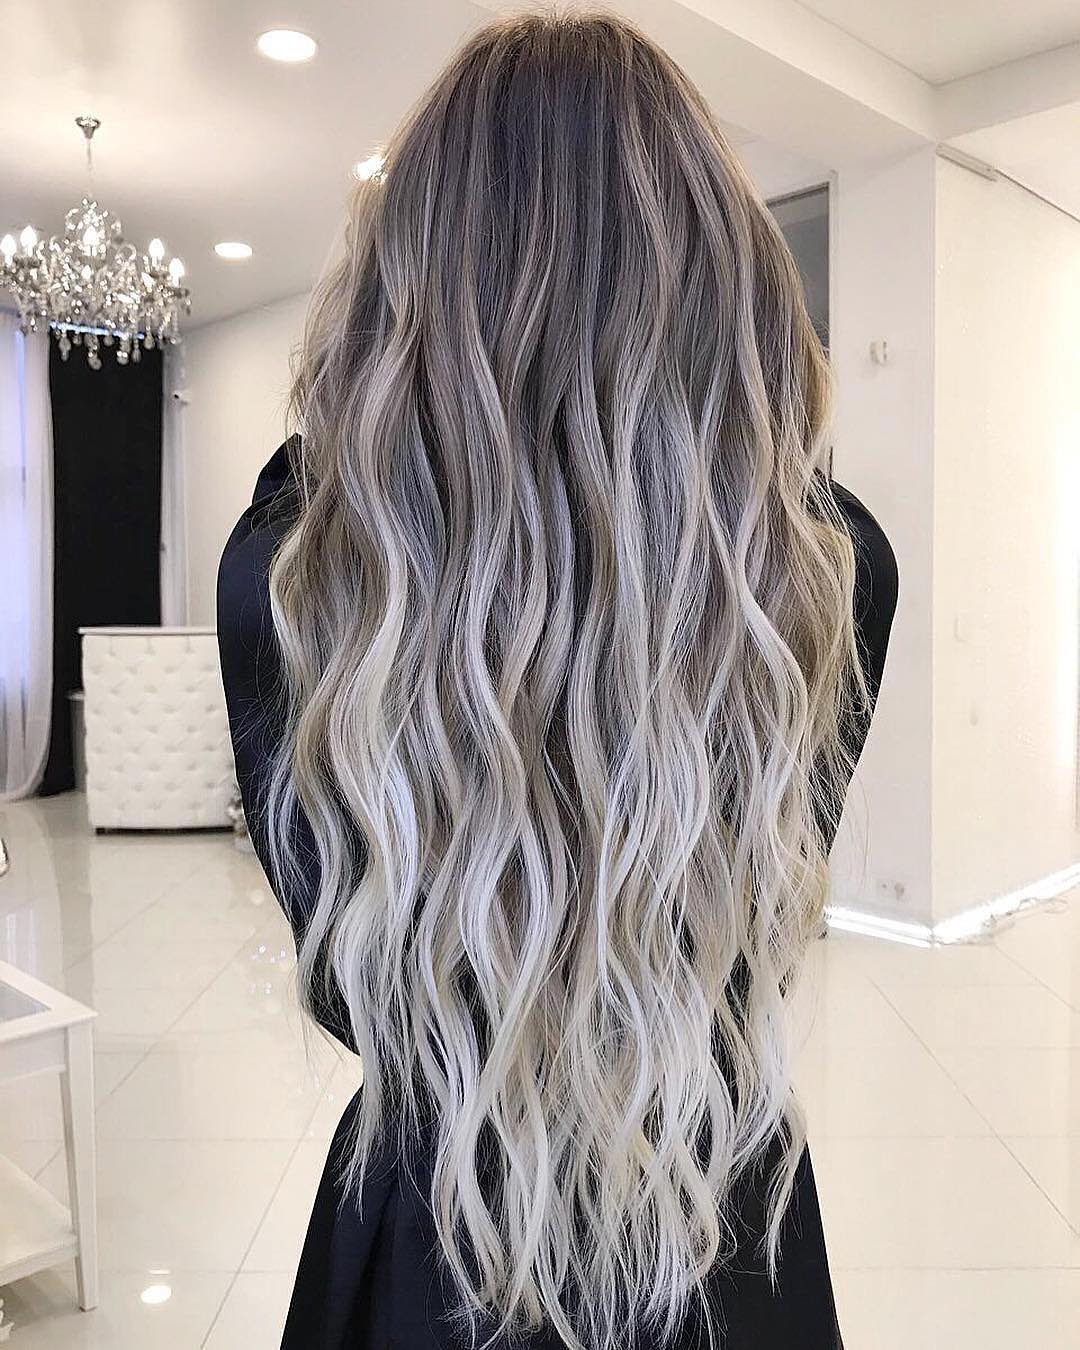 10 Balayage-Ombre Long Hair Styles from Subtle to Stunning ...